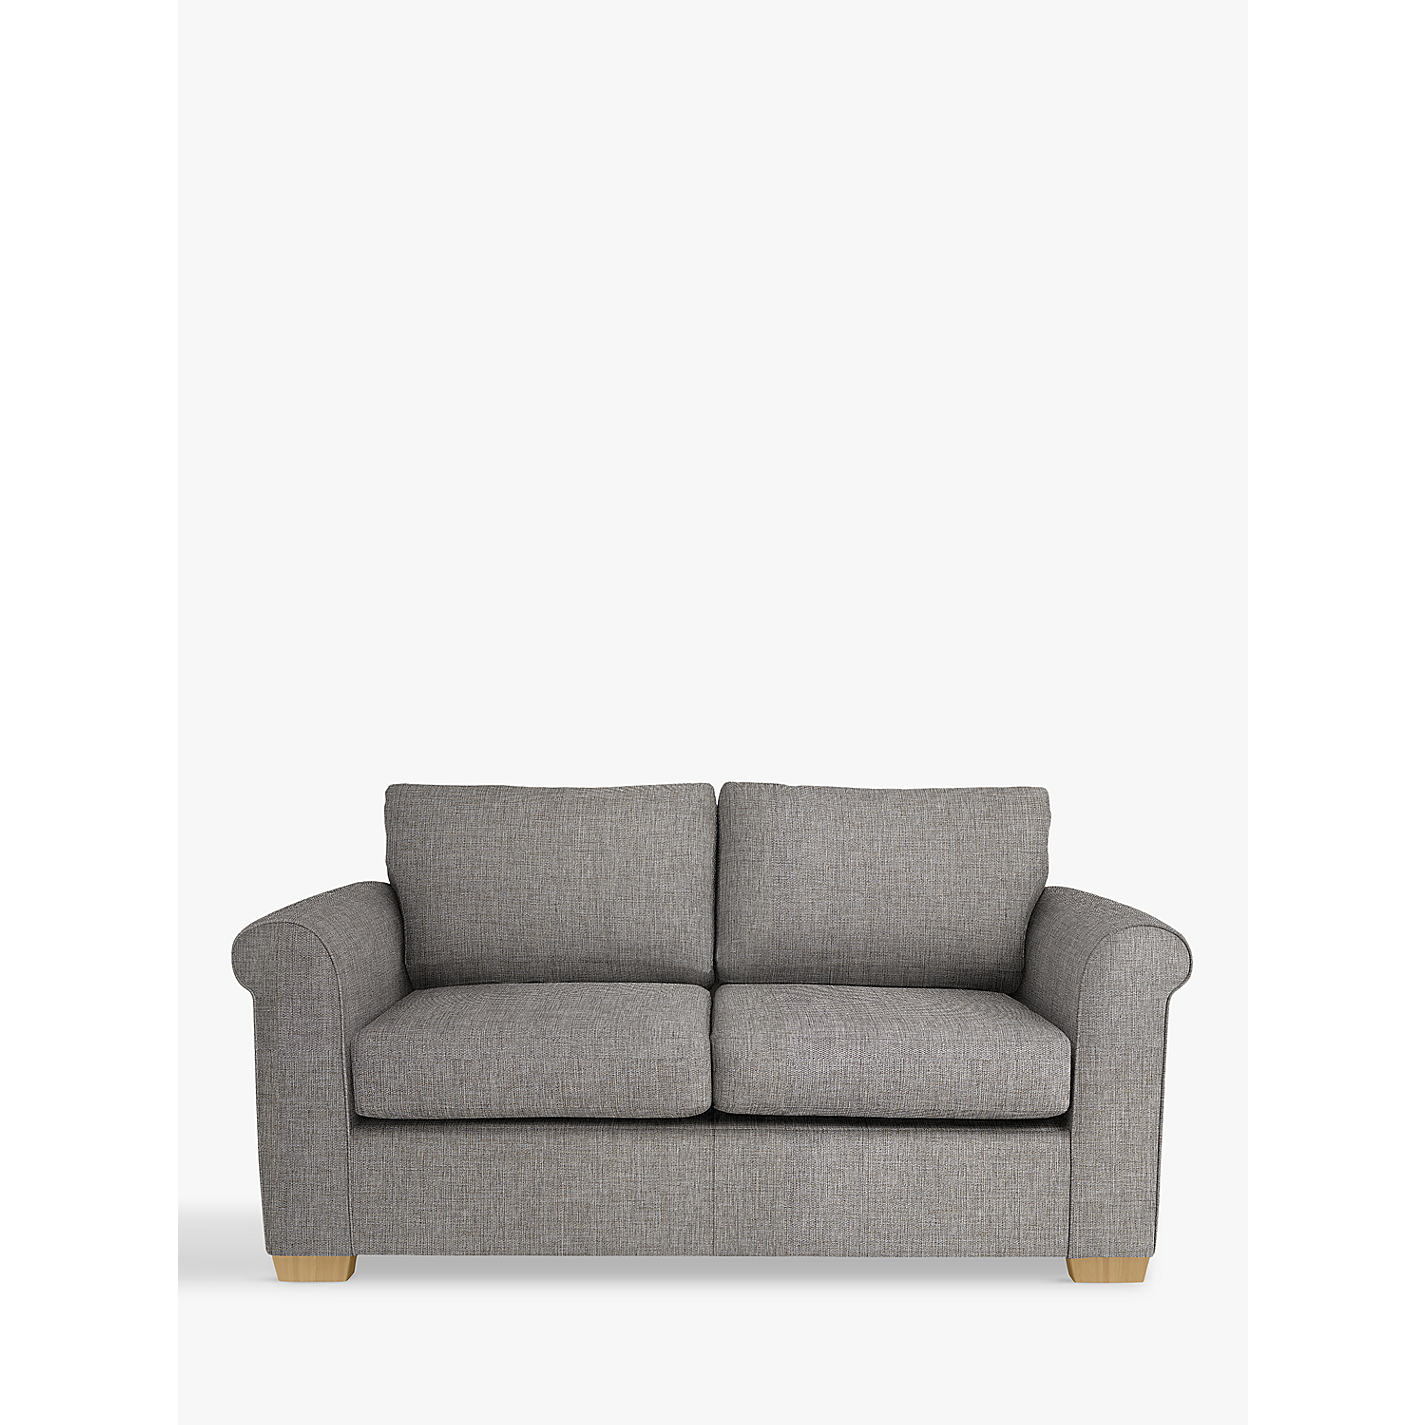 Sofa beds with sprung mattress - Buy John Lewis Malone 2 Seater Small Sofa Bed With Pocket Sprung Mattress Stanton French